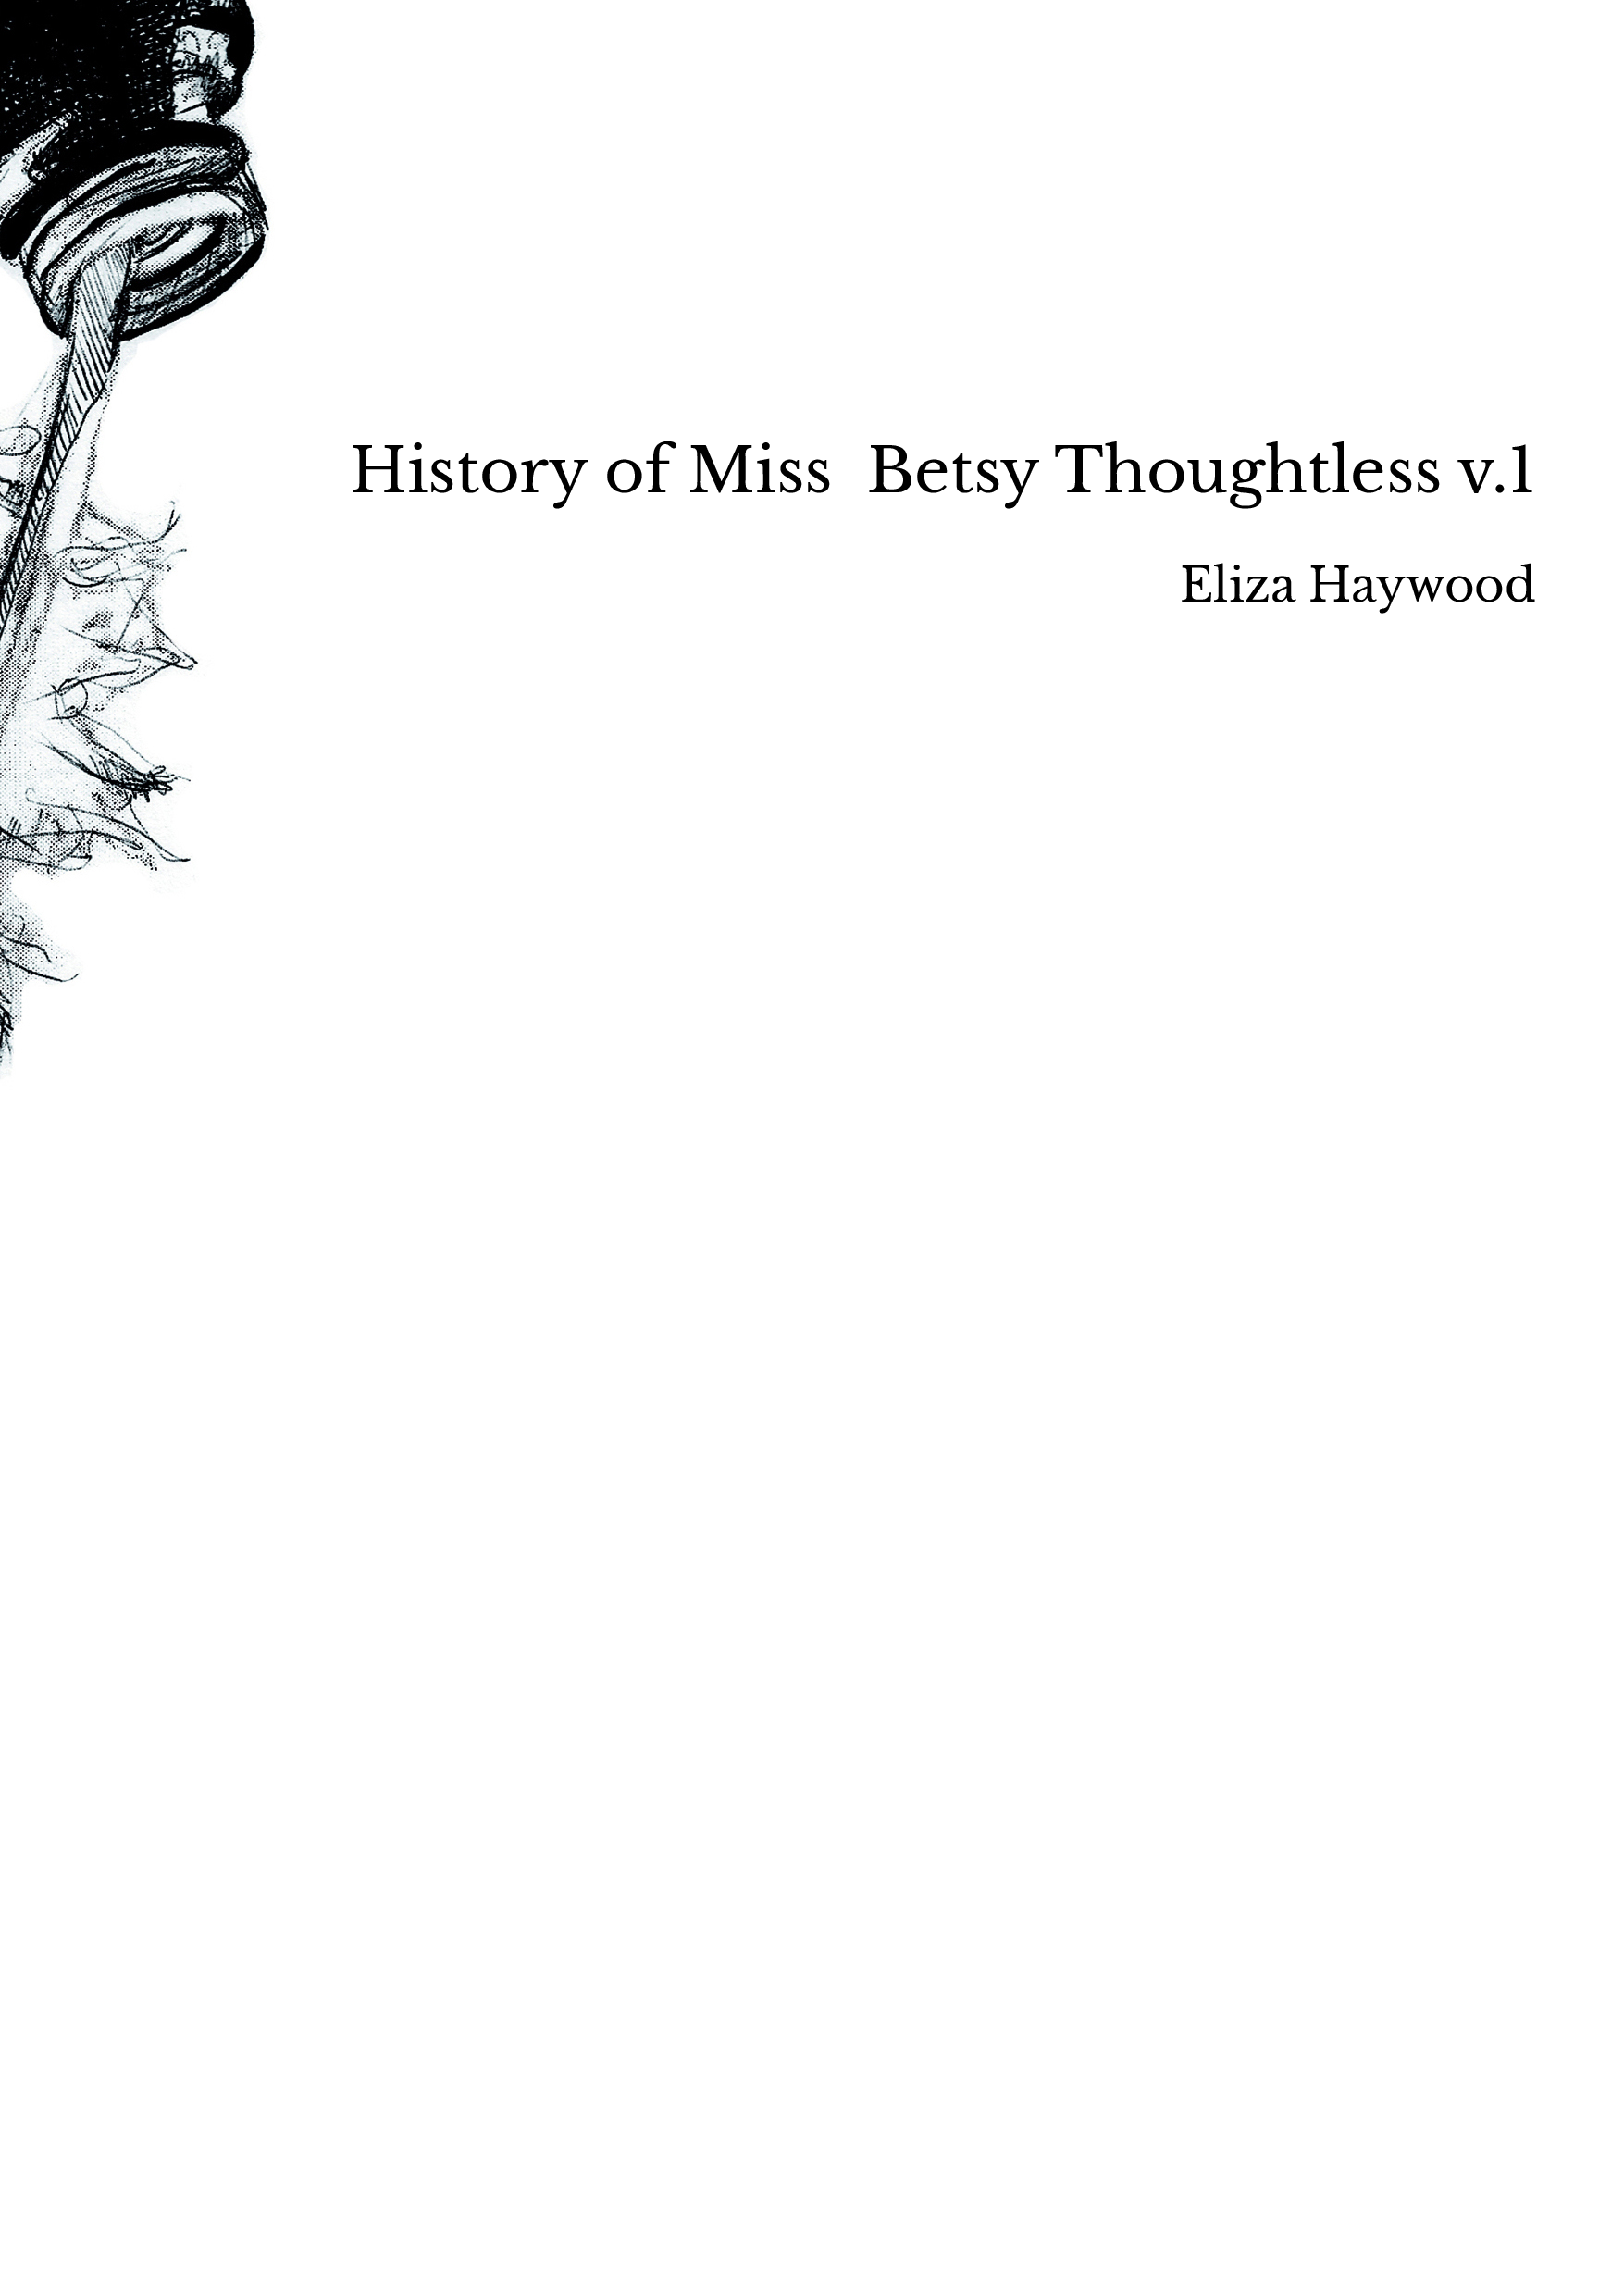 History of Miss Betsy Thoughtless v.1